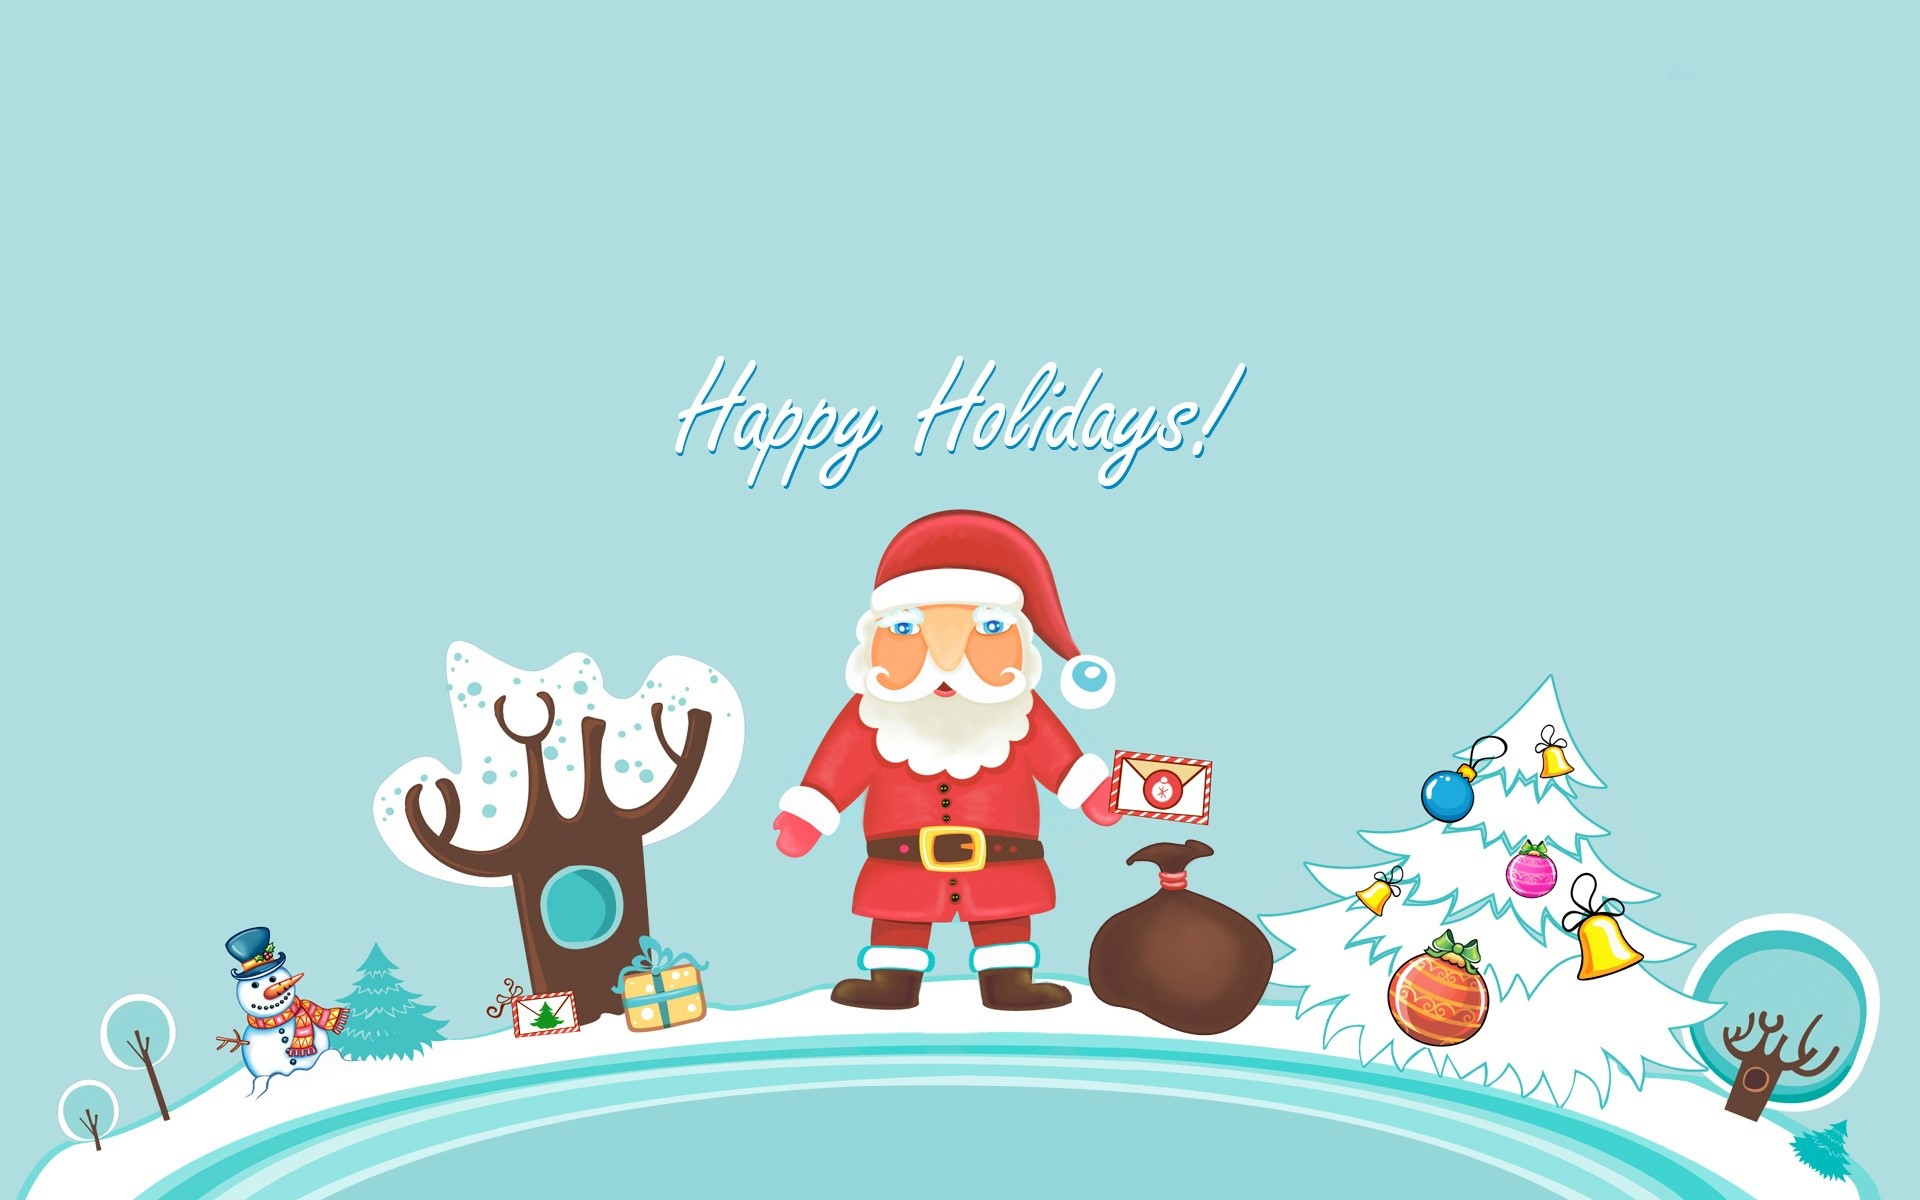 Wallpaper Santa Claus